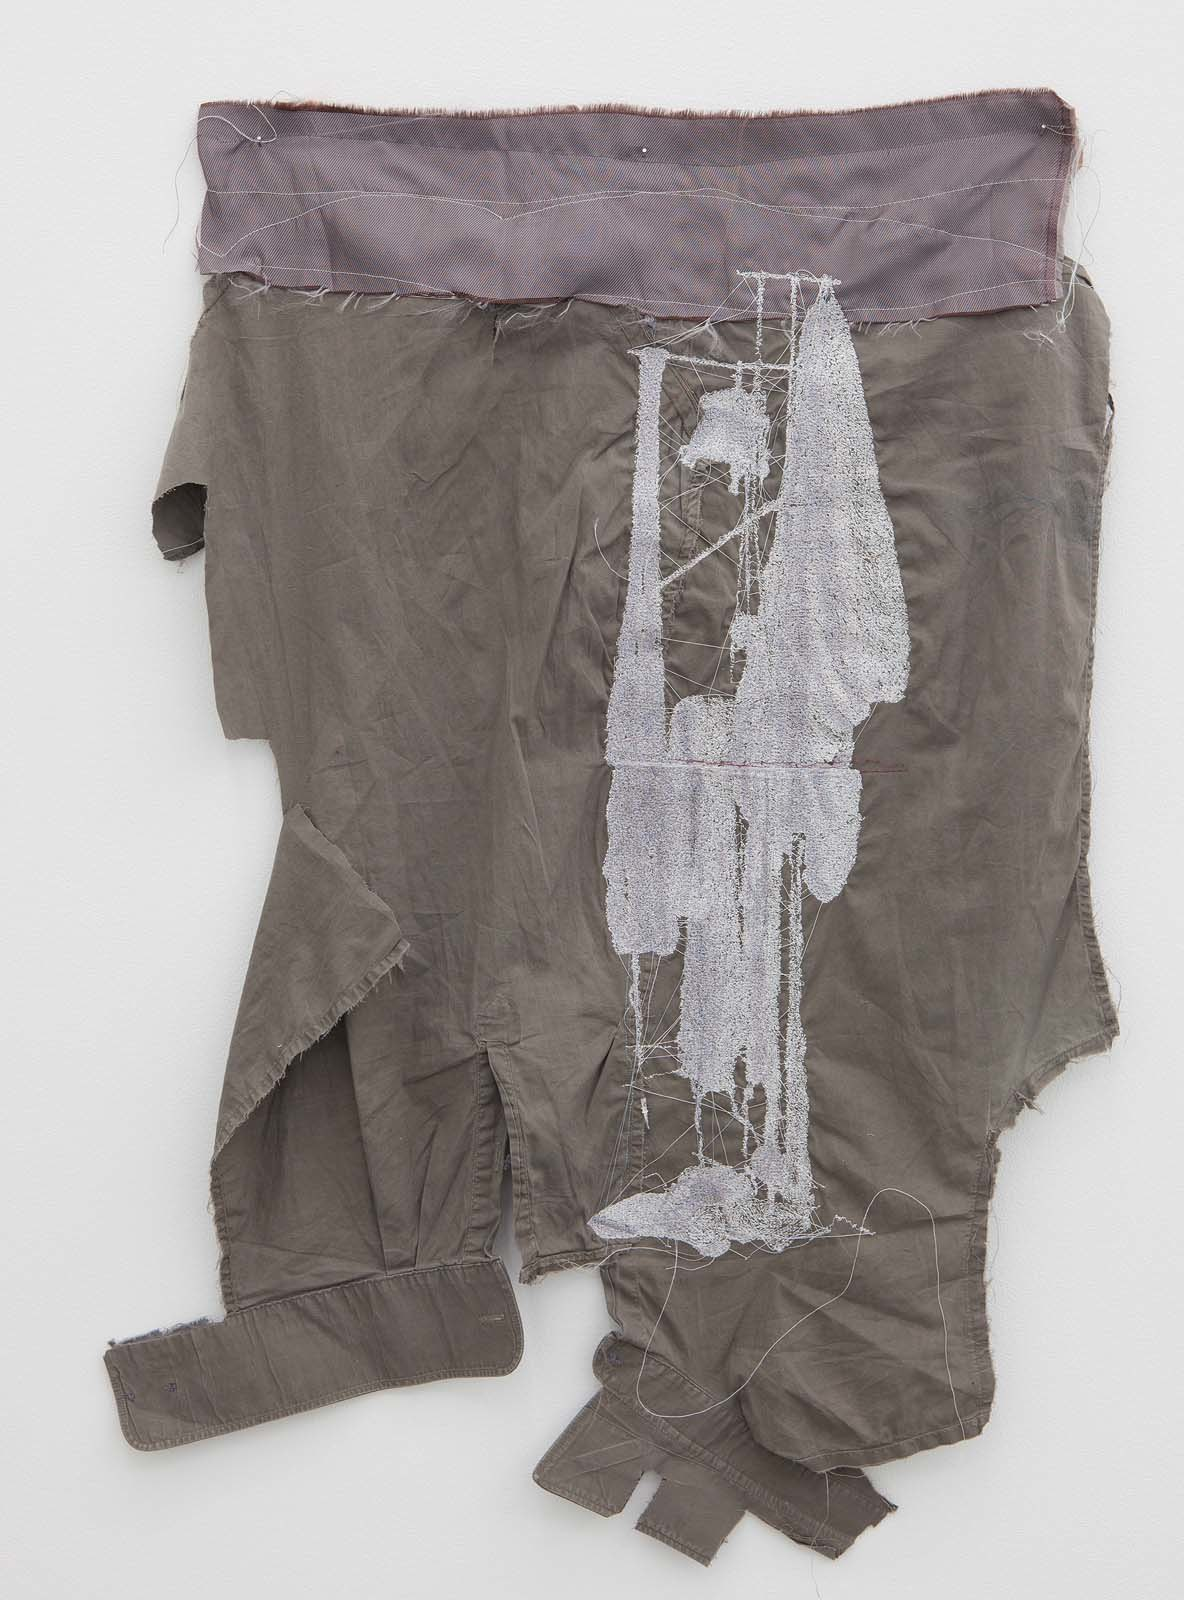 Misfit, 2010, embroidery on various textiles